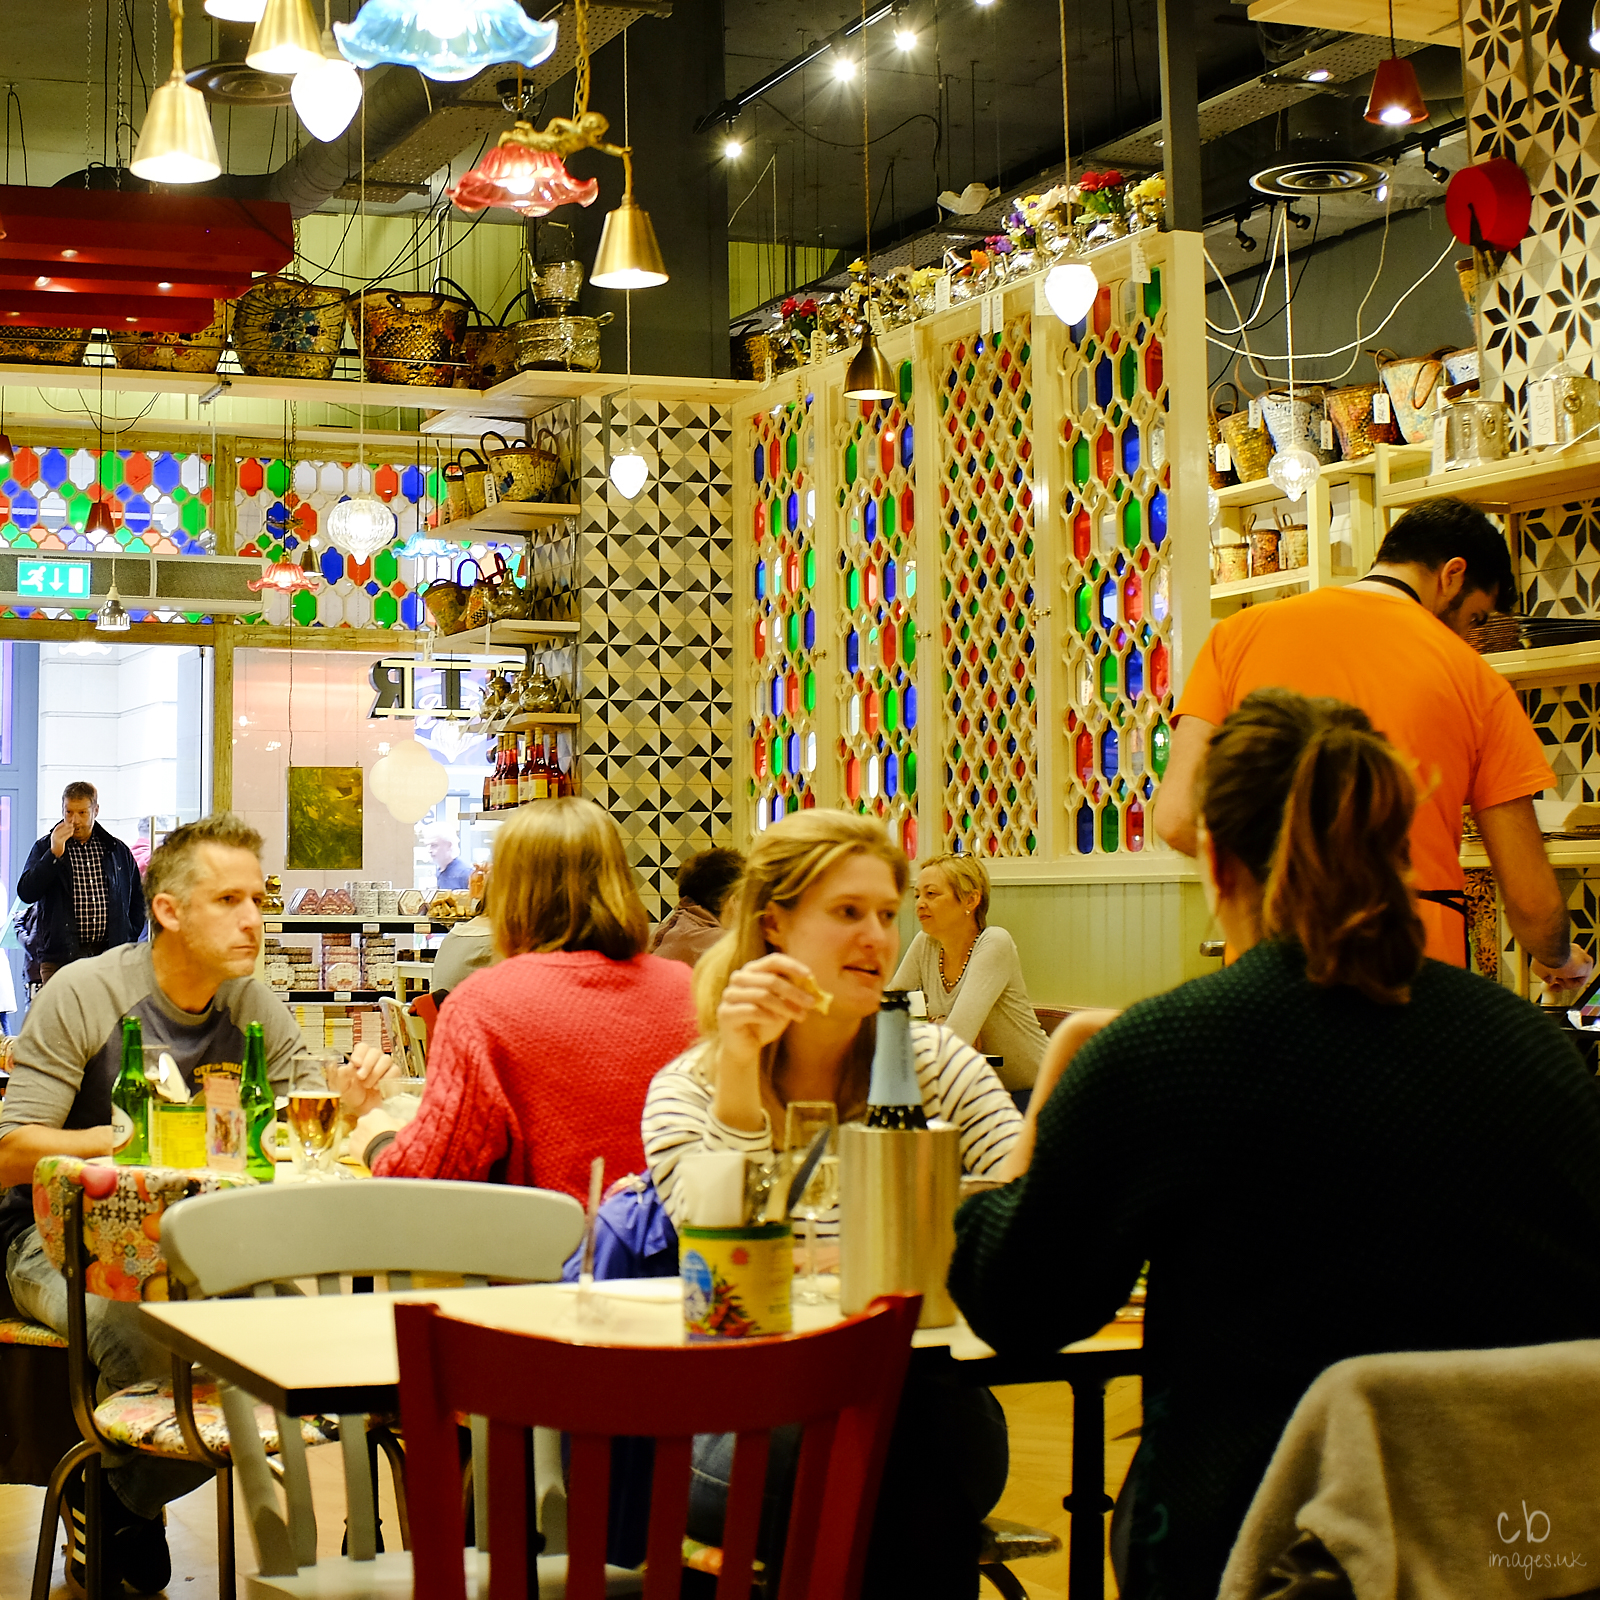 People at table in a colourful restaurant